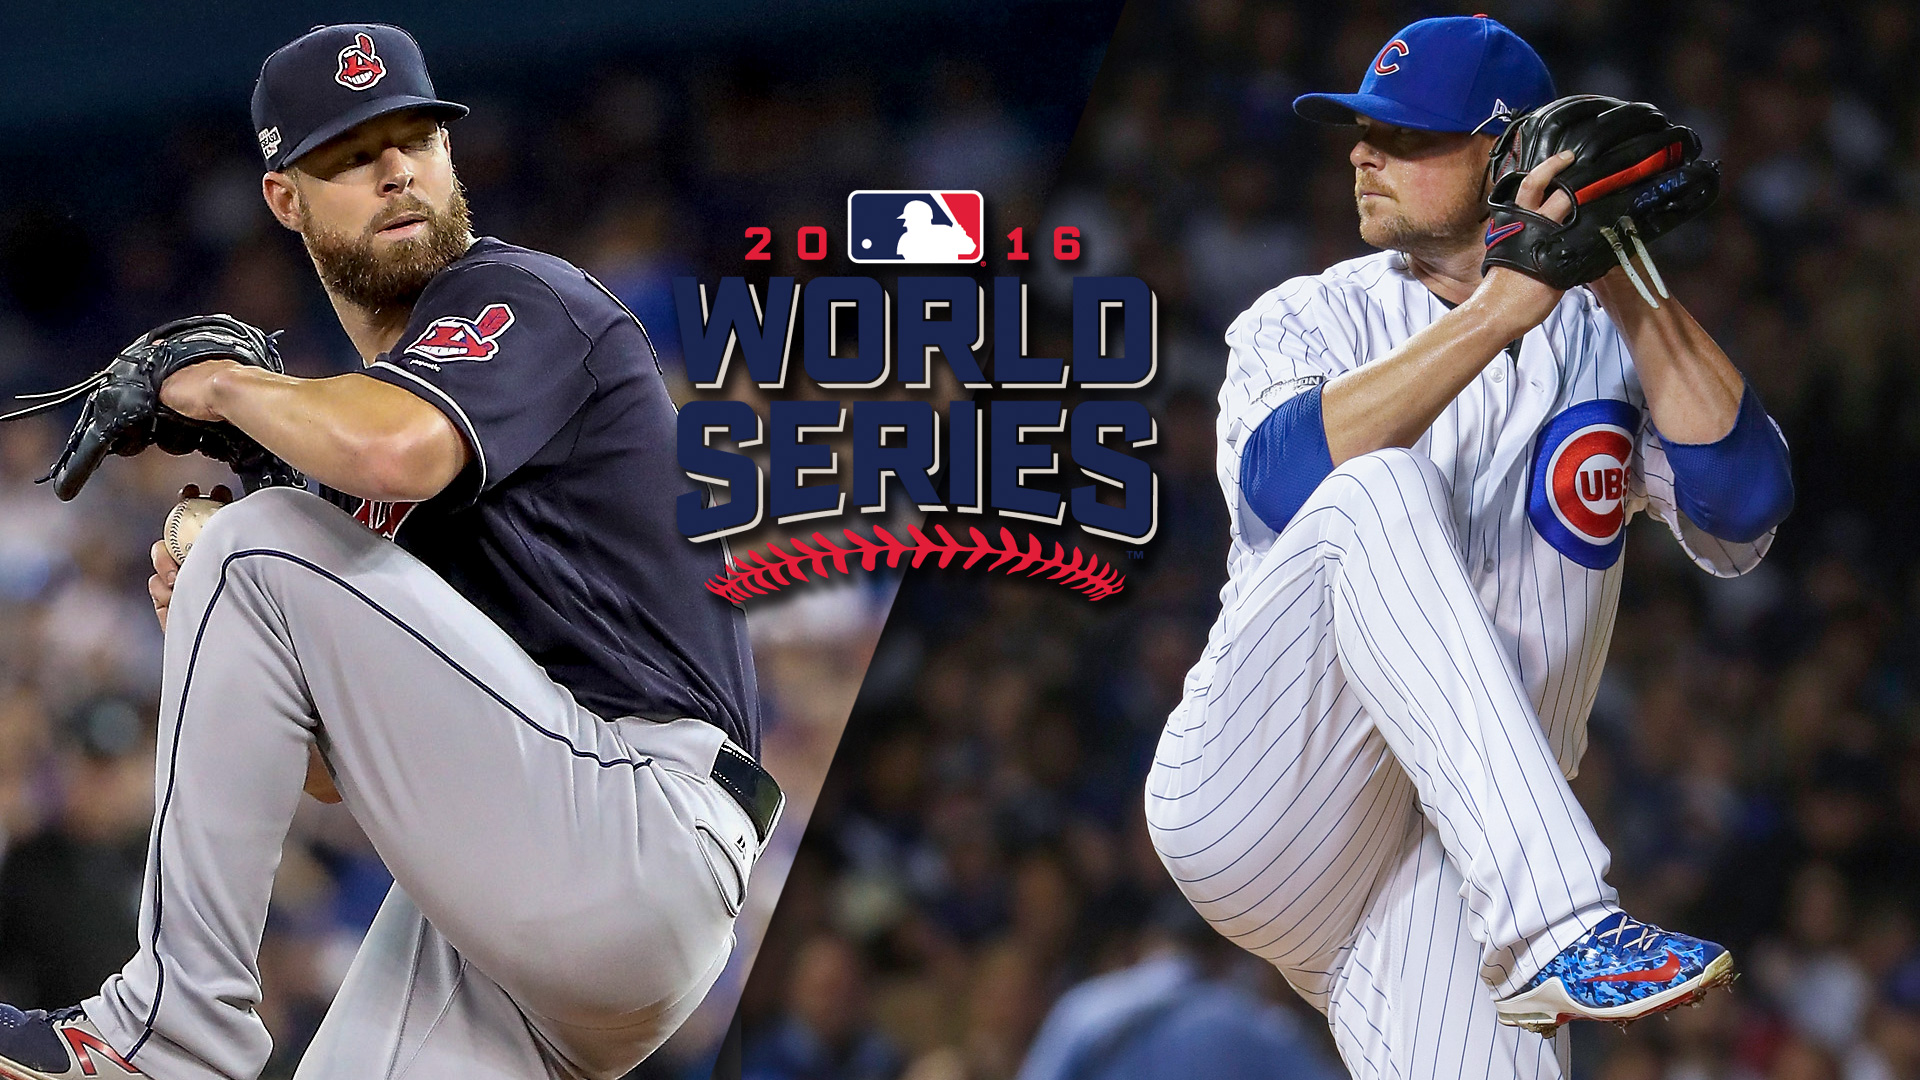 World series 2016 game 1 score highlights from indians win over cubs mlb sporting news